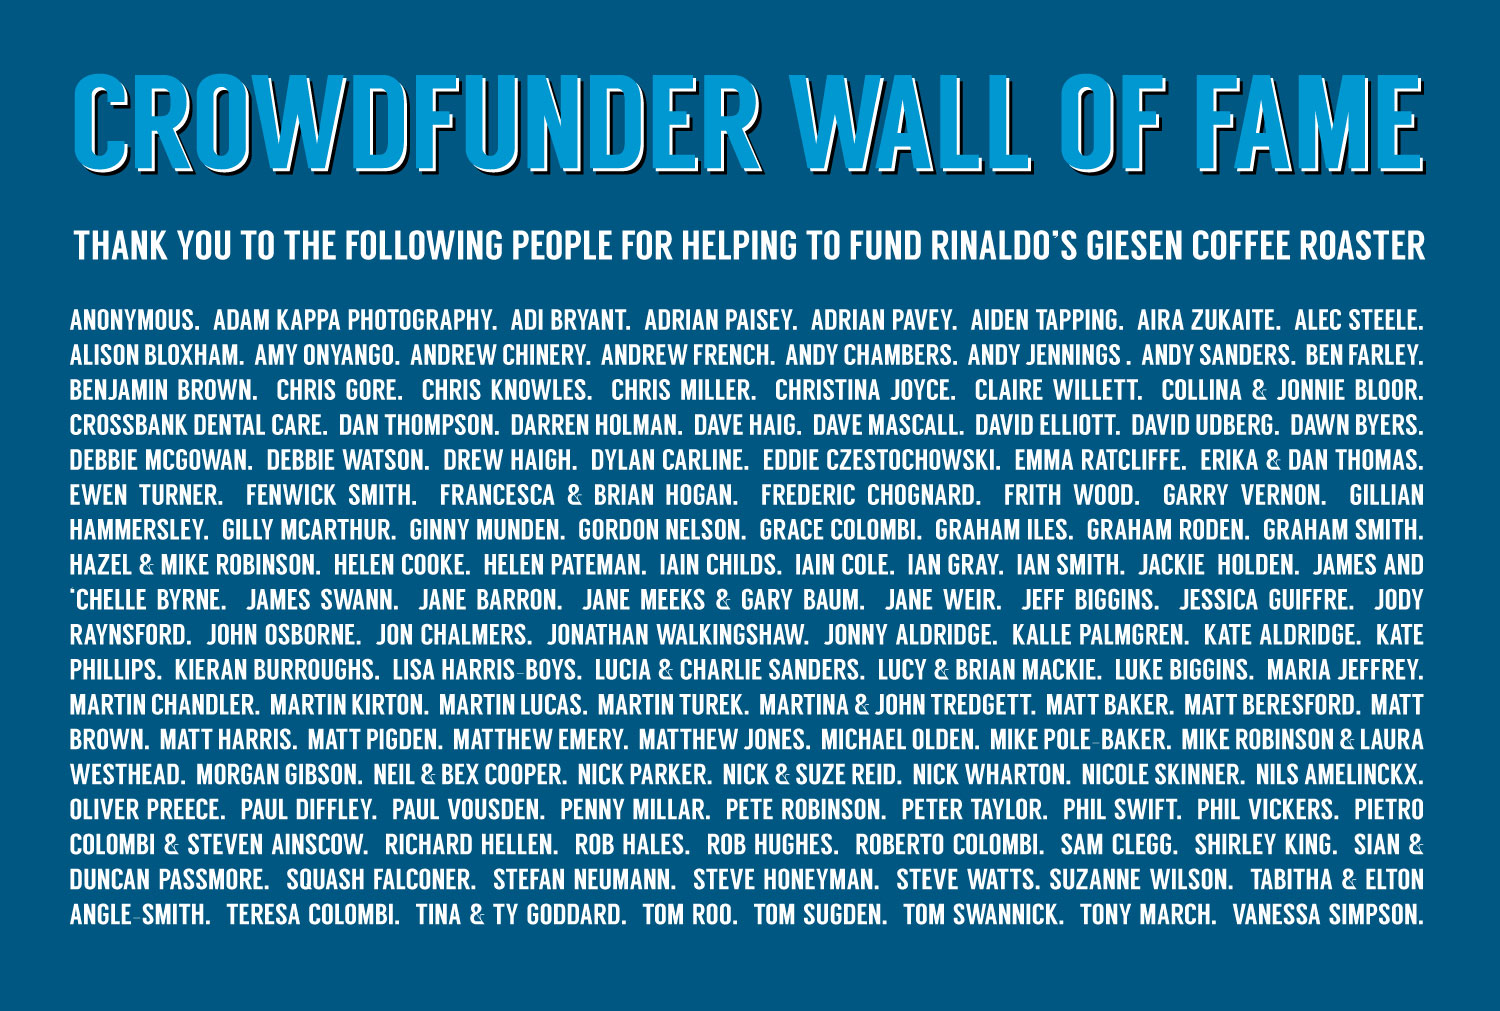 Rinaldo's Crowdfunder Wall of Fame